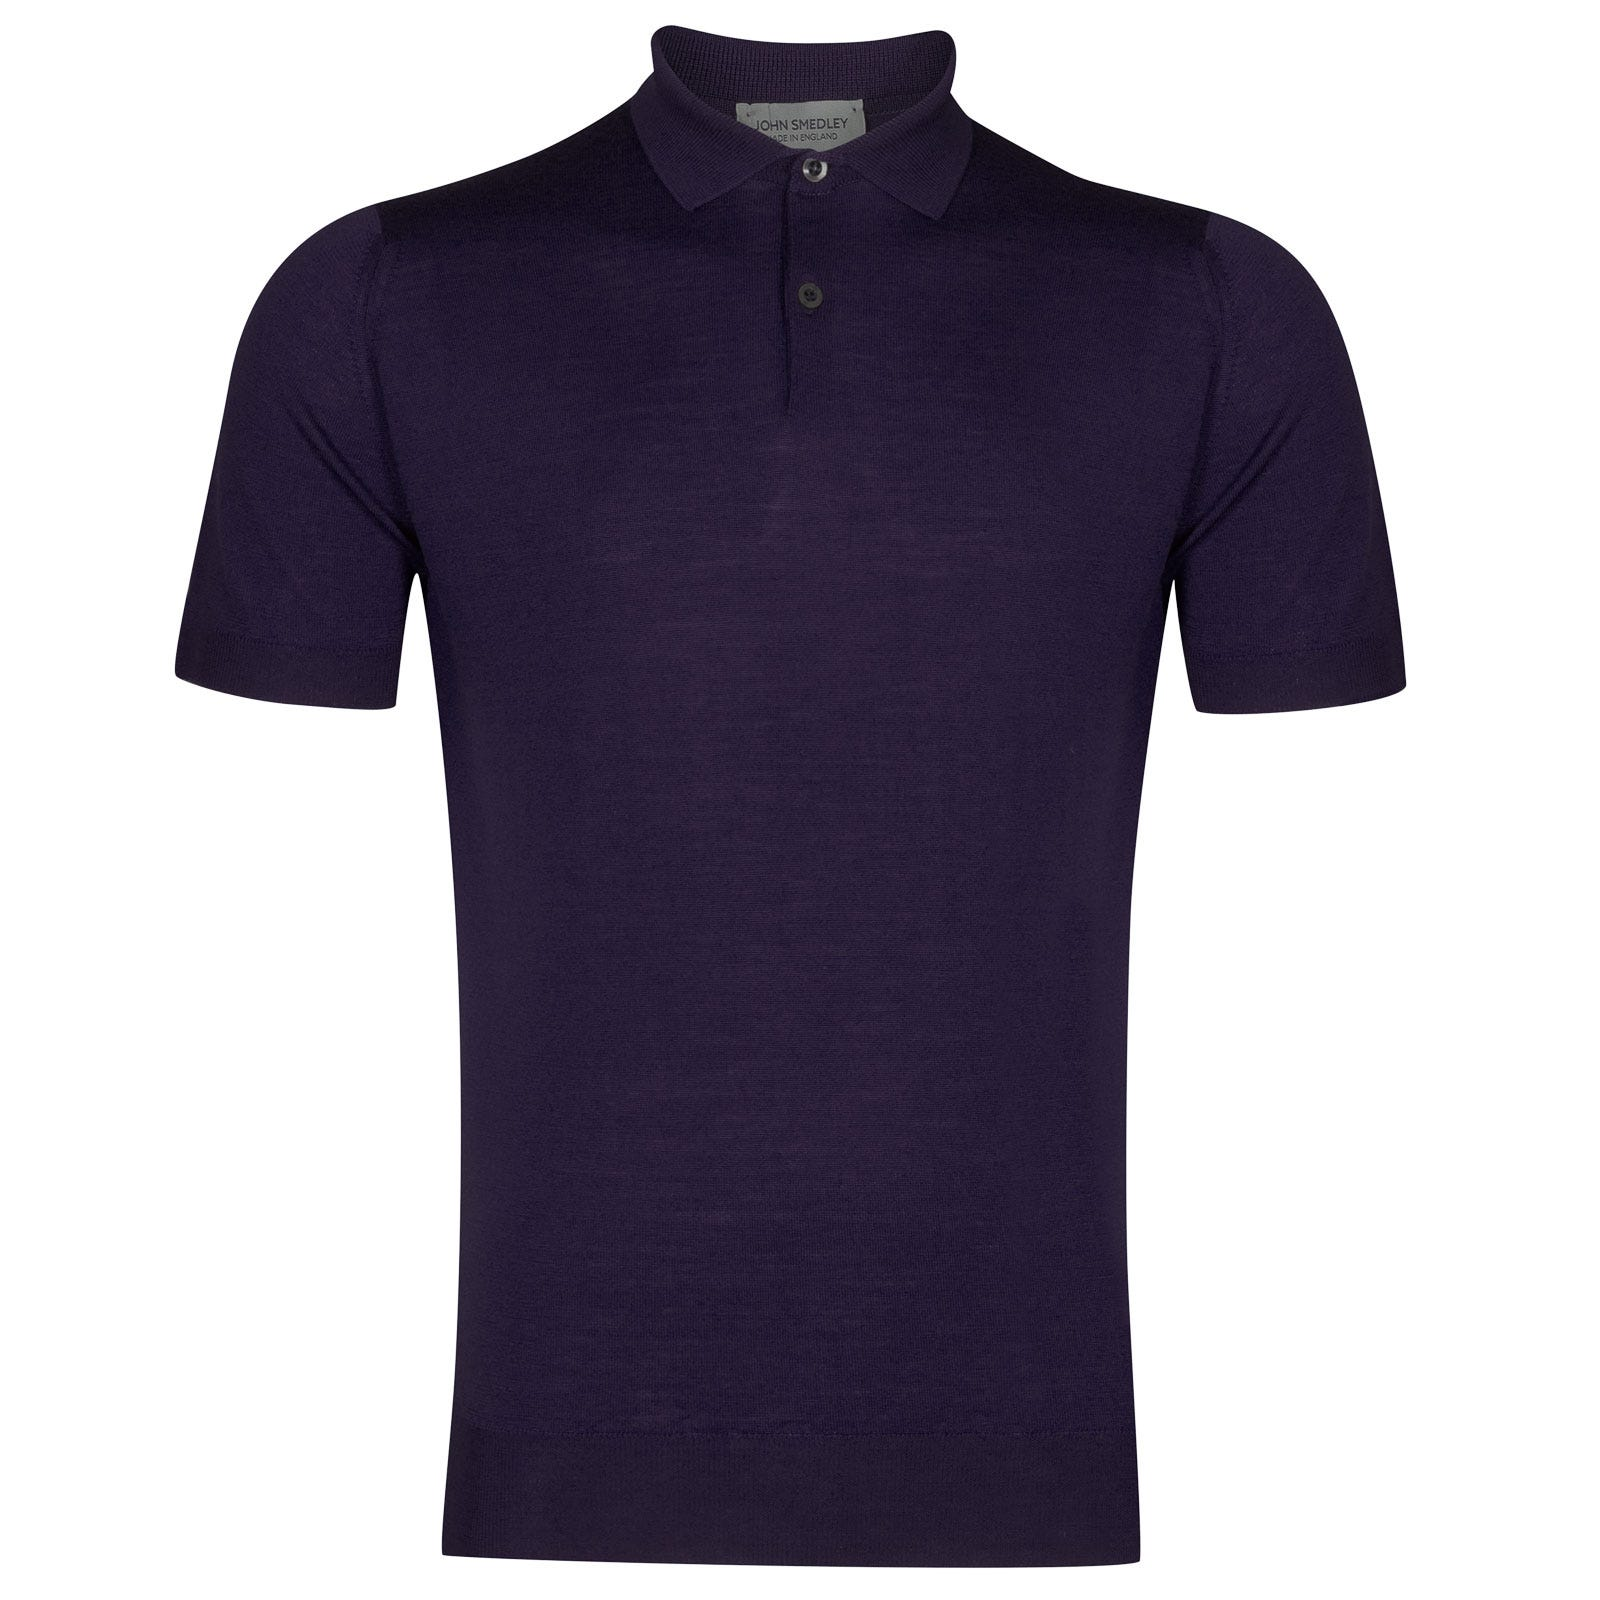 John Smedley payton Merino Wool Shirt in Elderberry Purple-XXL